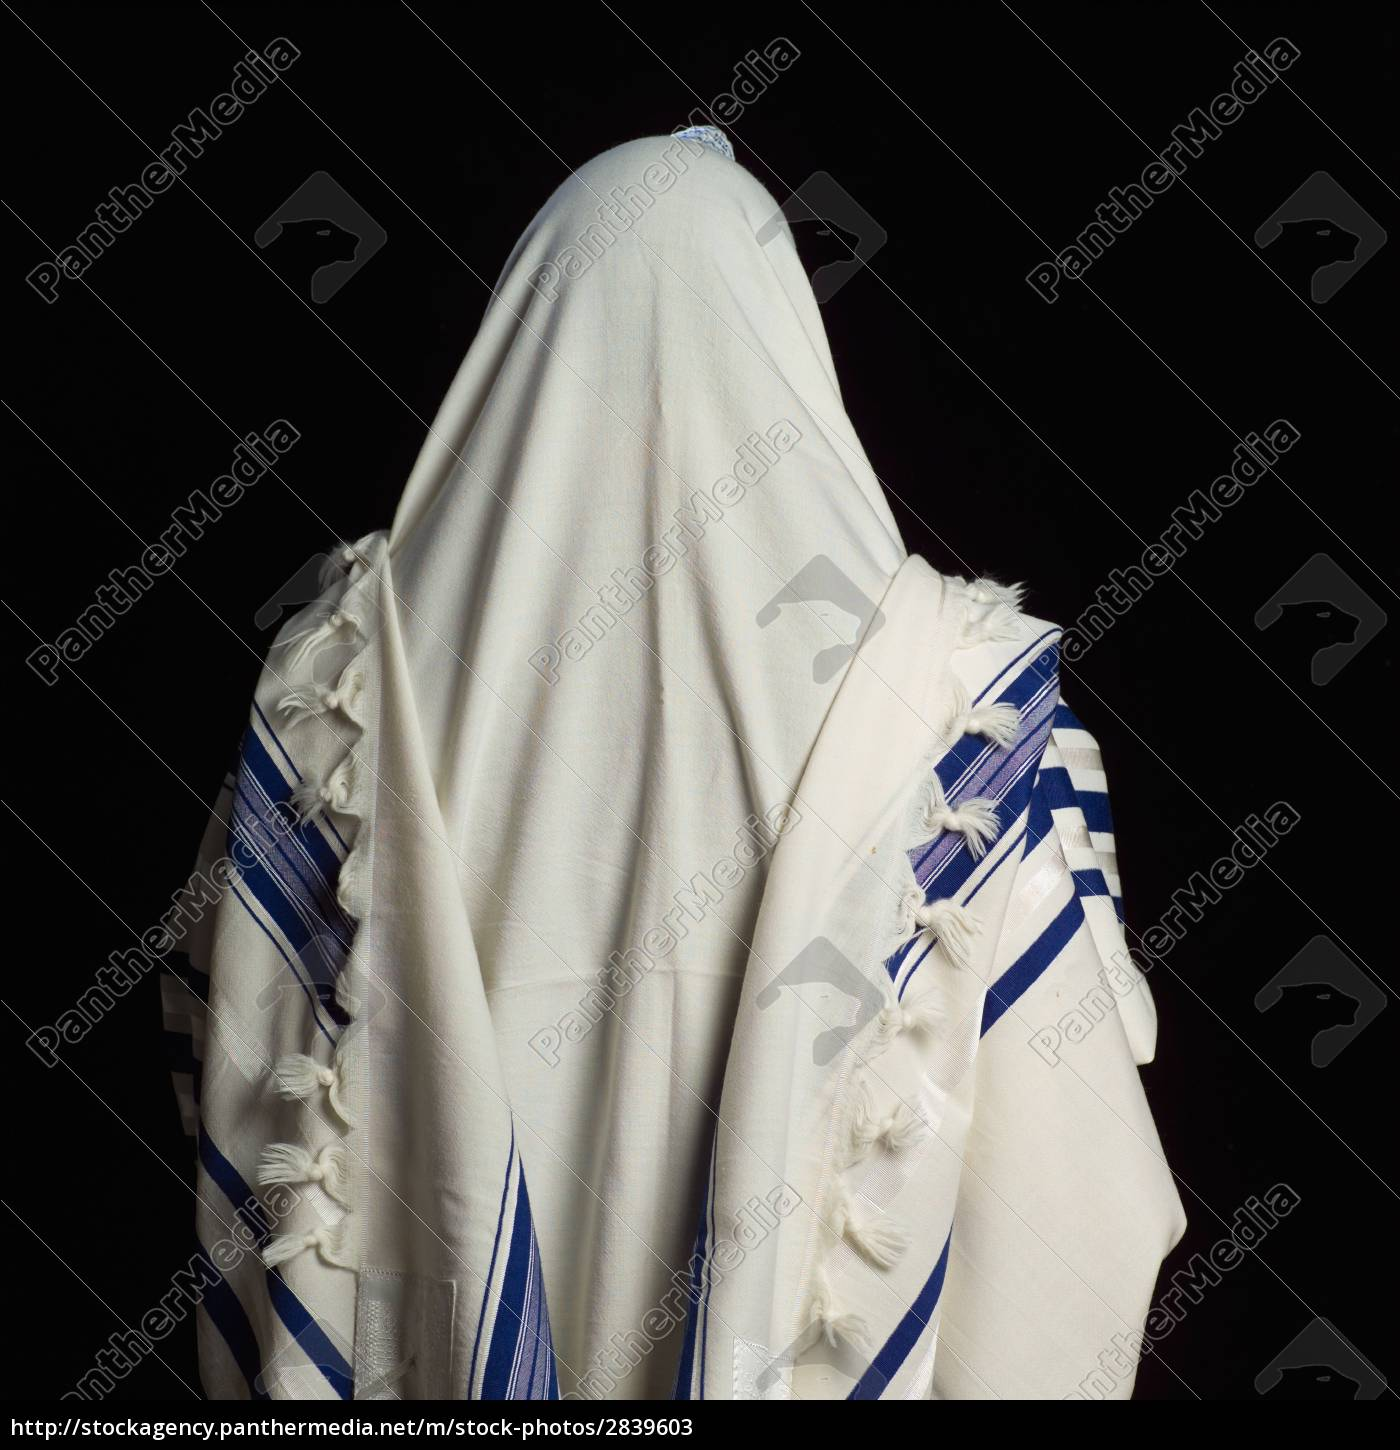 judaica, symbols, -, prayer, shawl - 2839603